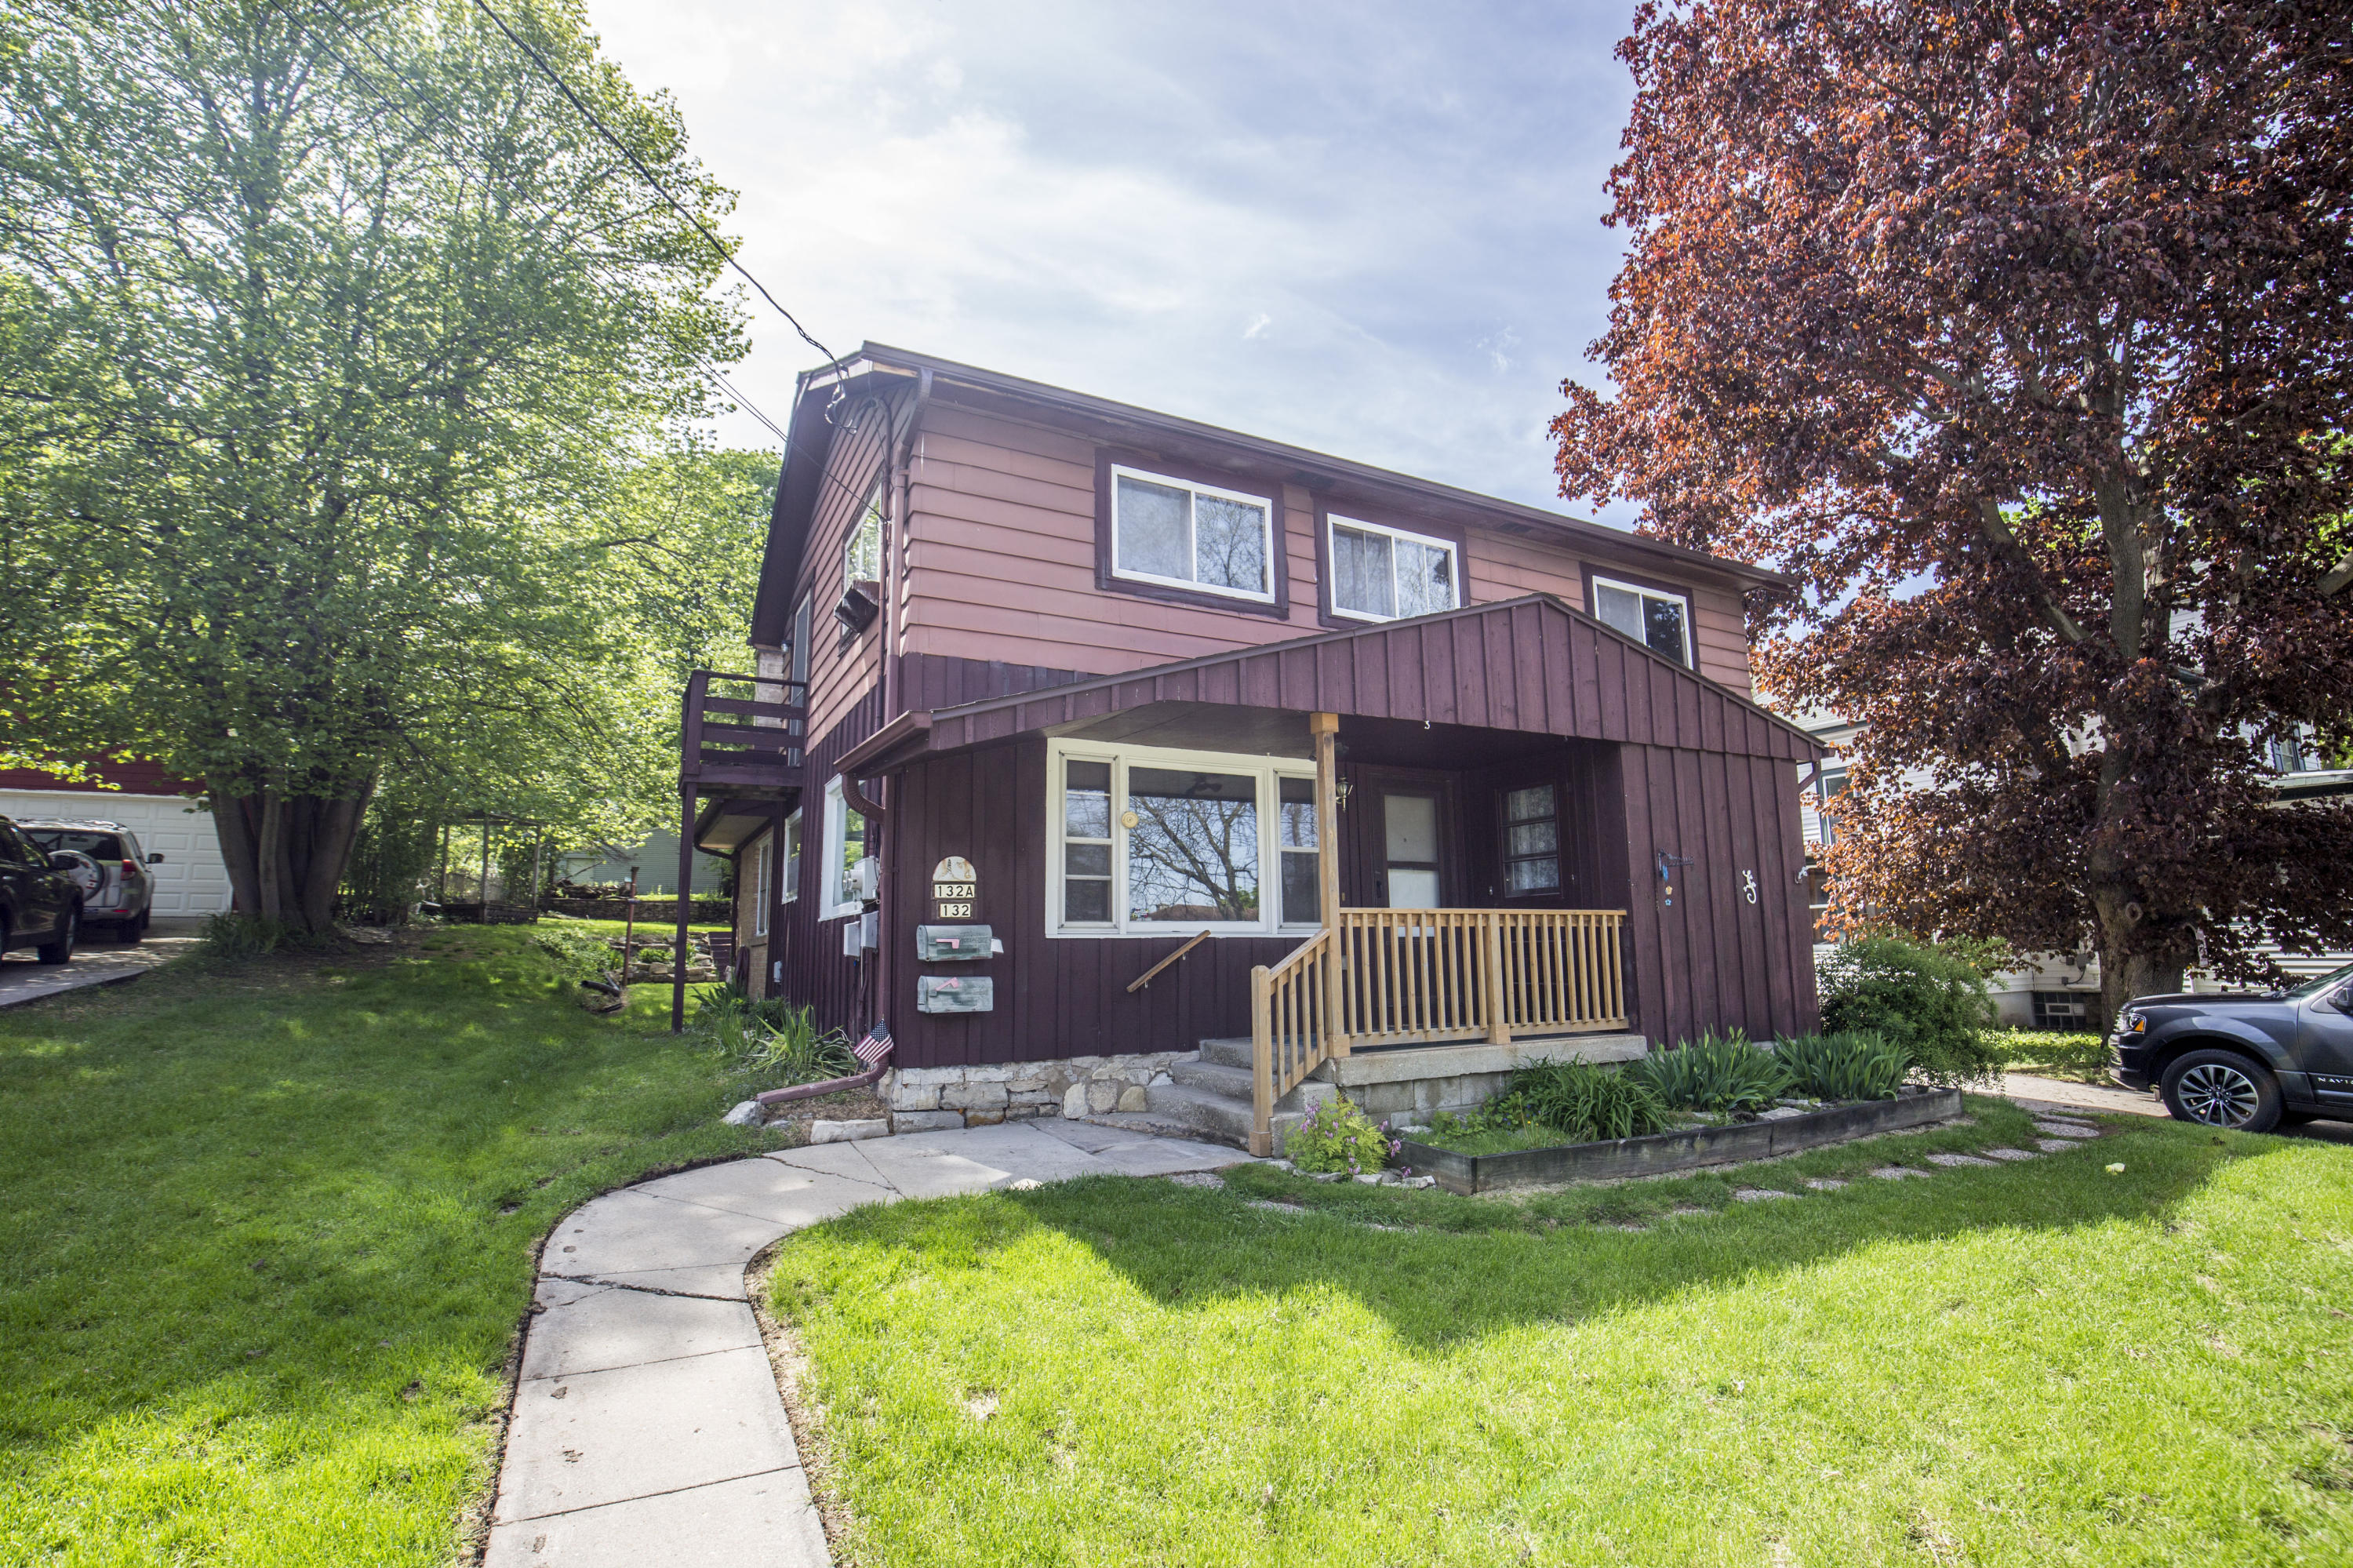 132 Spring St, Waukesha, Wisconsin 53188, 2 Bedrooms Bedrooms, 4 Rooms Rooms,1 BathroomBathrooms,Two-Family,For Sale,Spring St,1,1638632